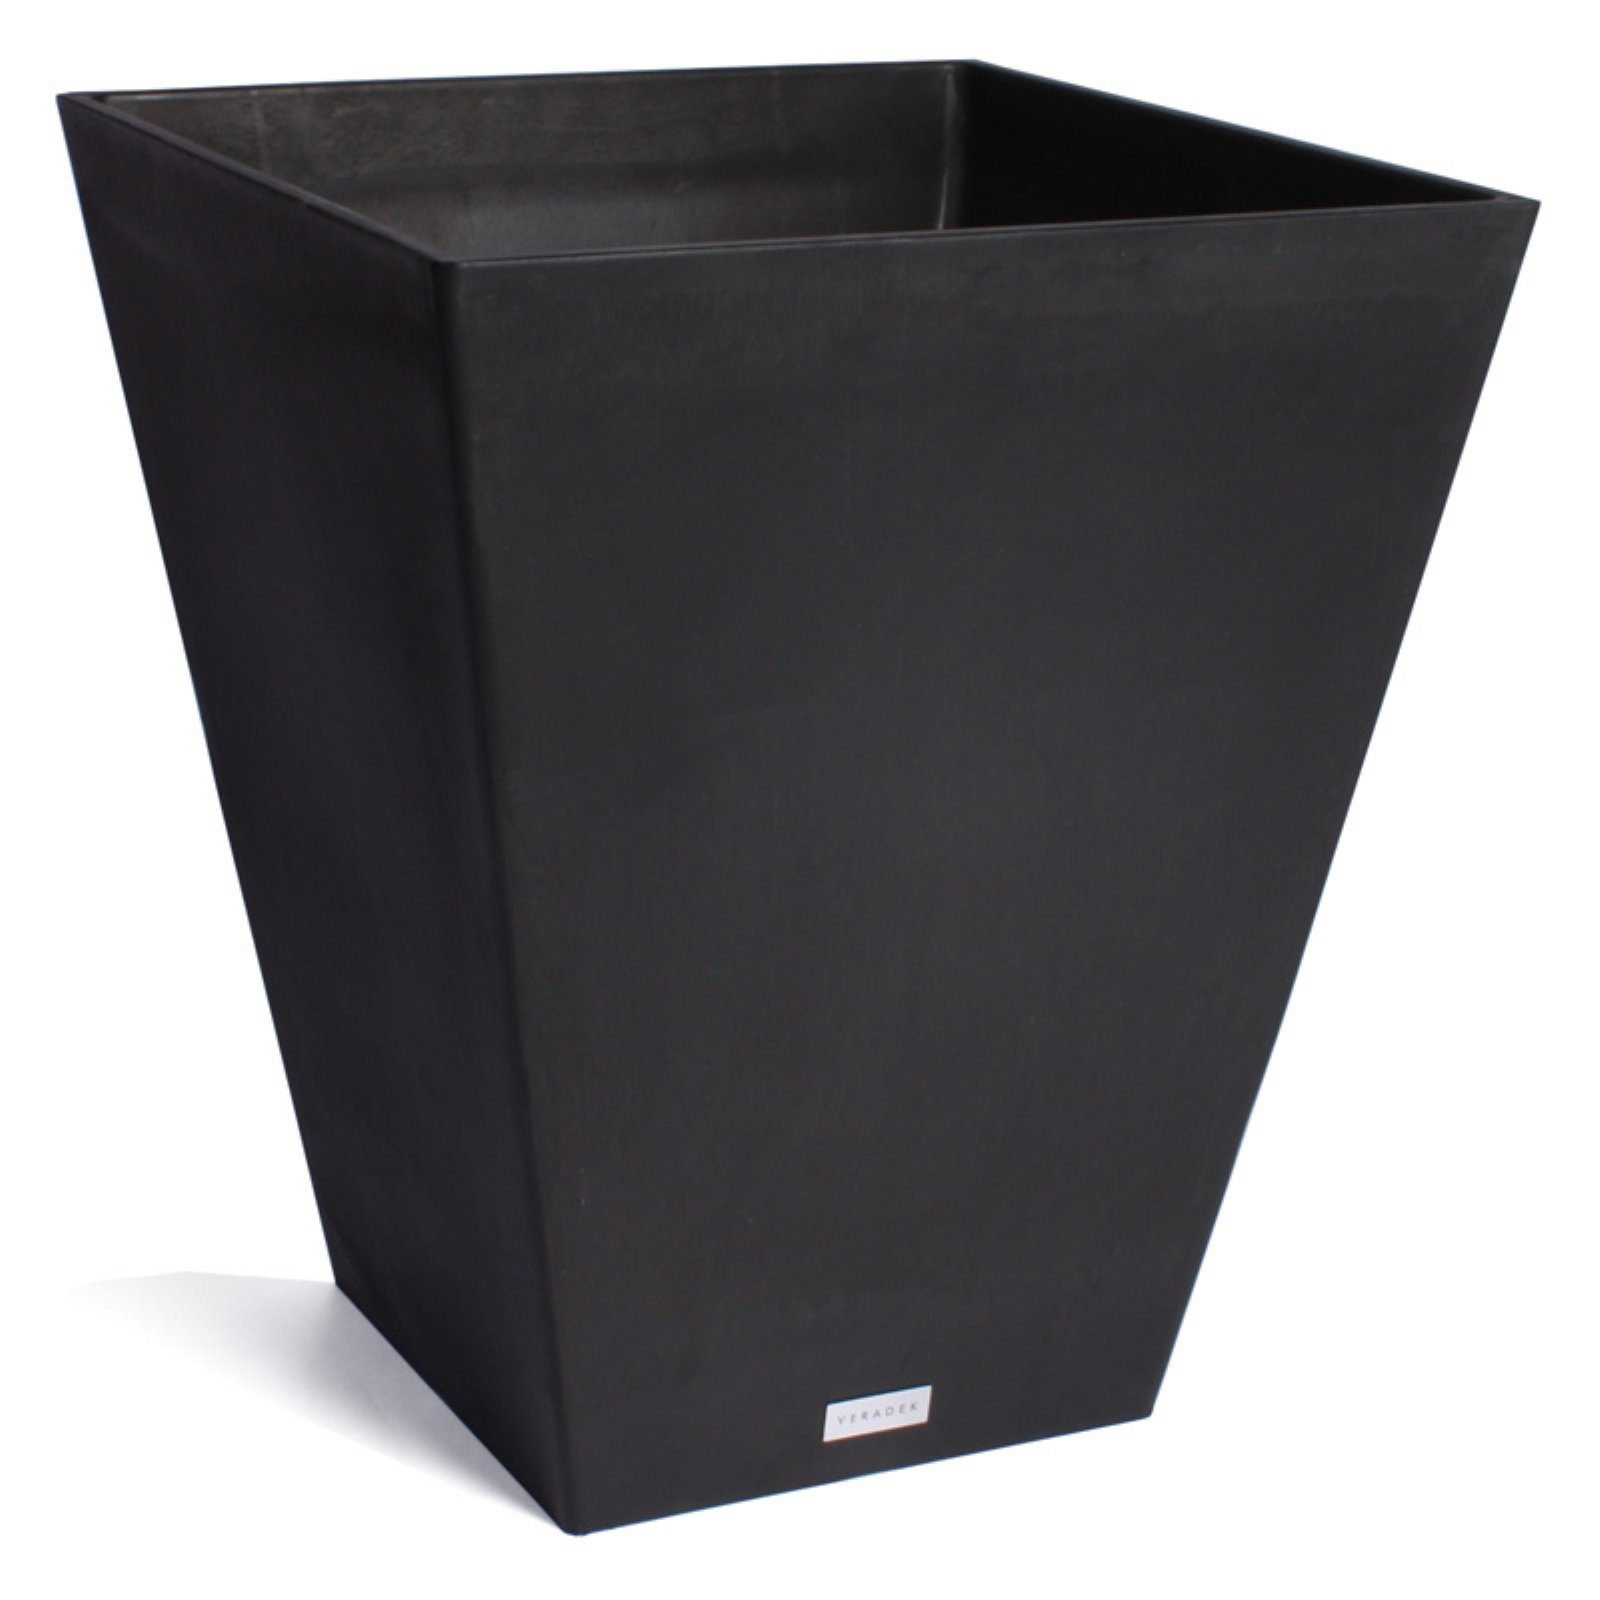 Veradek Nobleton Planter Black 18 in. by Veradek Inc